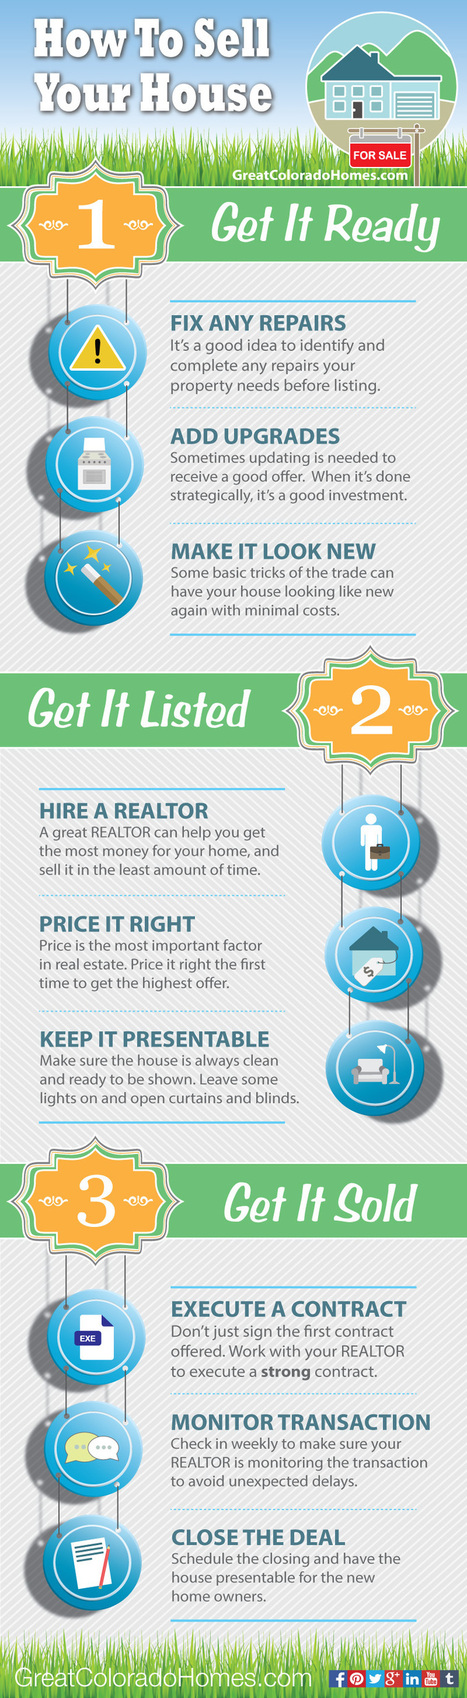 How To Sell a House in 3 Basic Steps | Real Estate News | Scoop.it